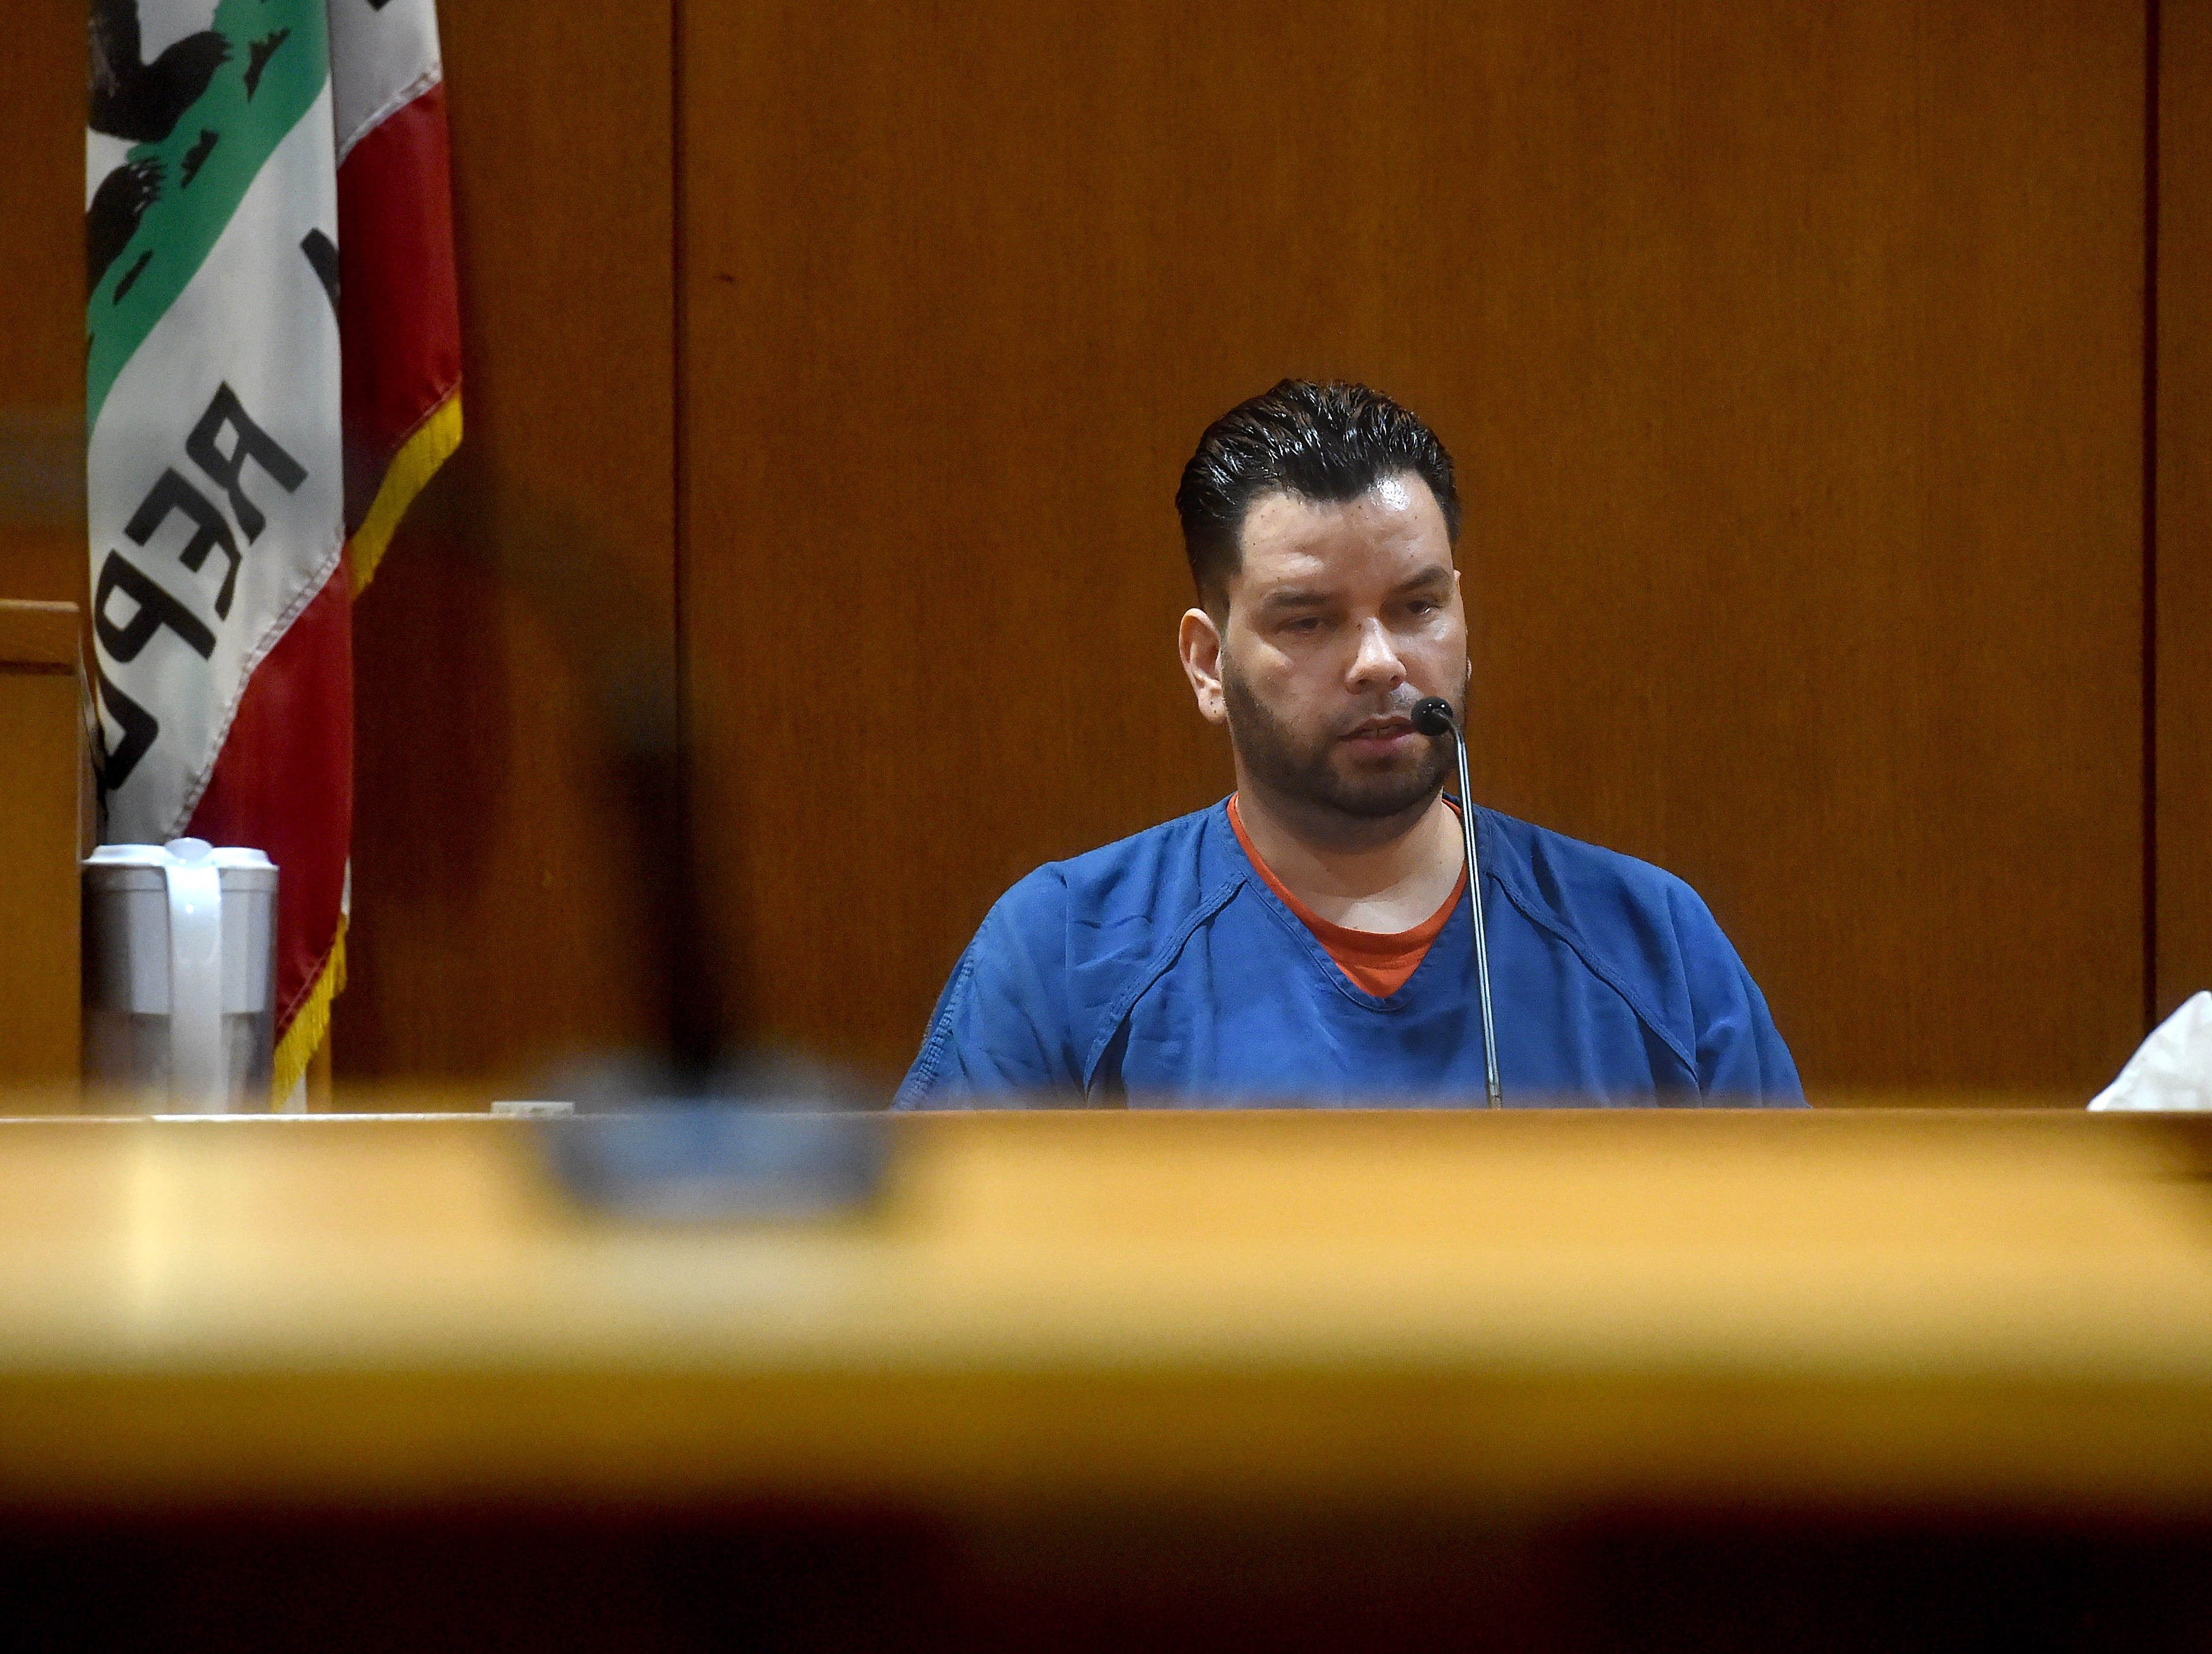 Omar Lopez, of Oxnard, testifies Monday during the trial of Mayra Chavez. She has pleaded not guilty to second-degree murder in the death of her and Lopez's daughter Kimberly.